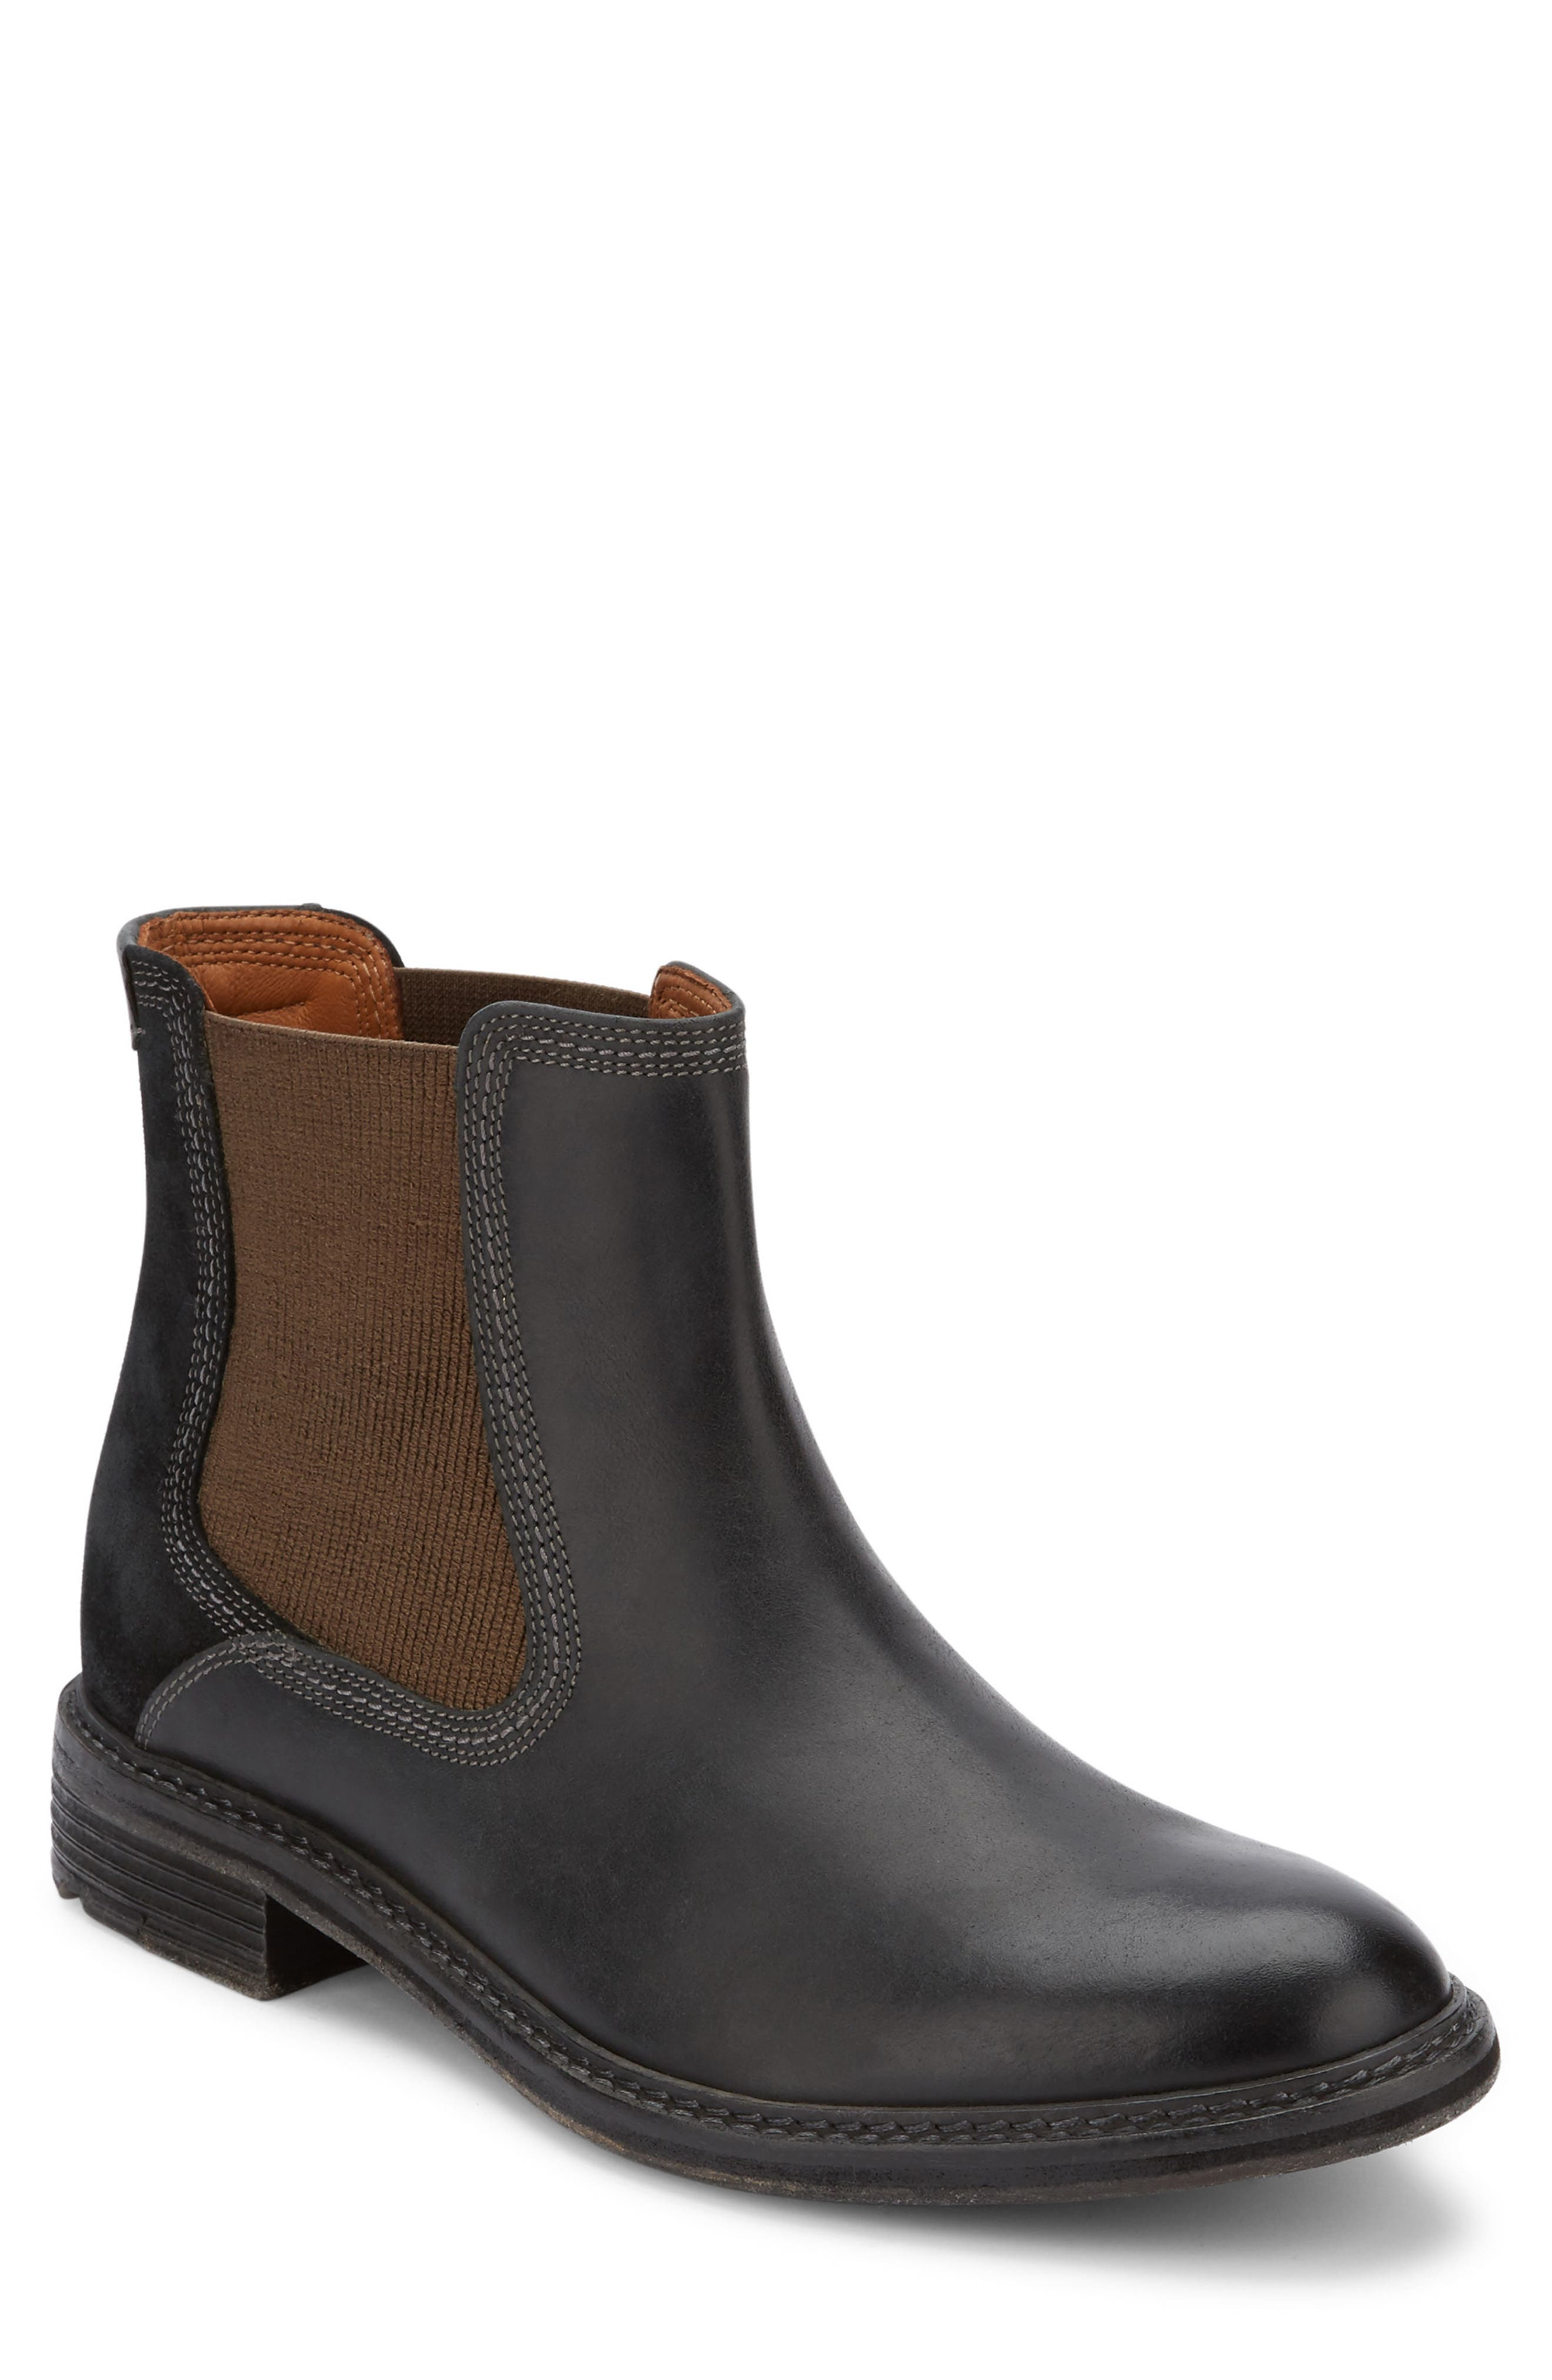 Hendrick Chelsea Boot,                             Main thumbnail 1, color,                             Black